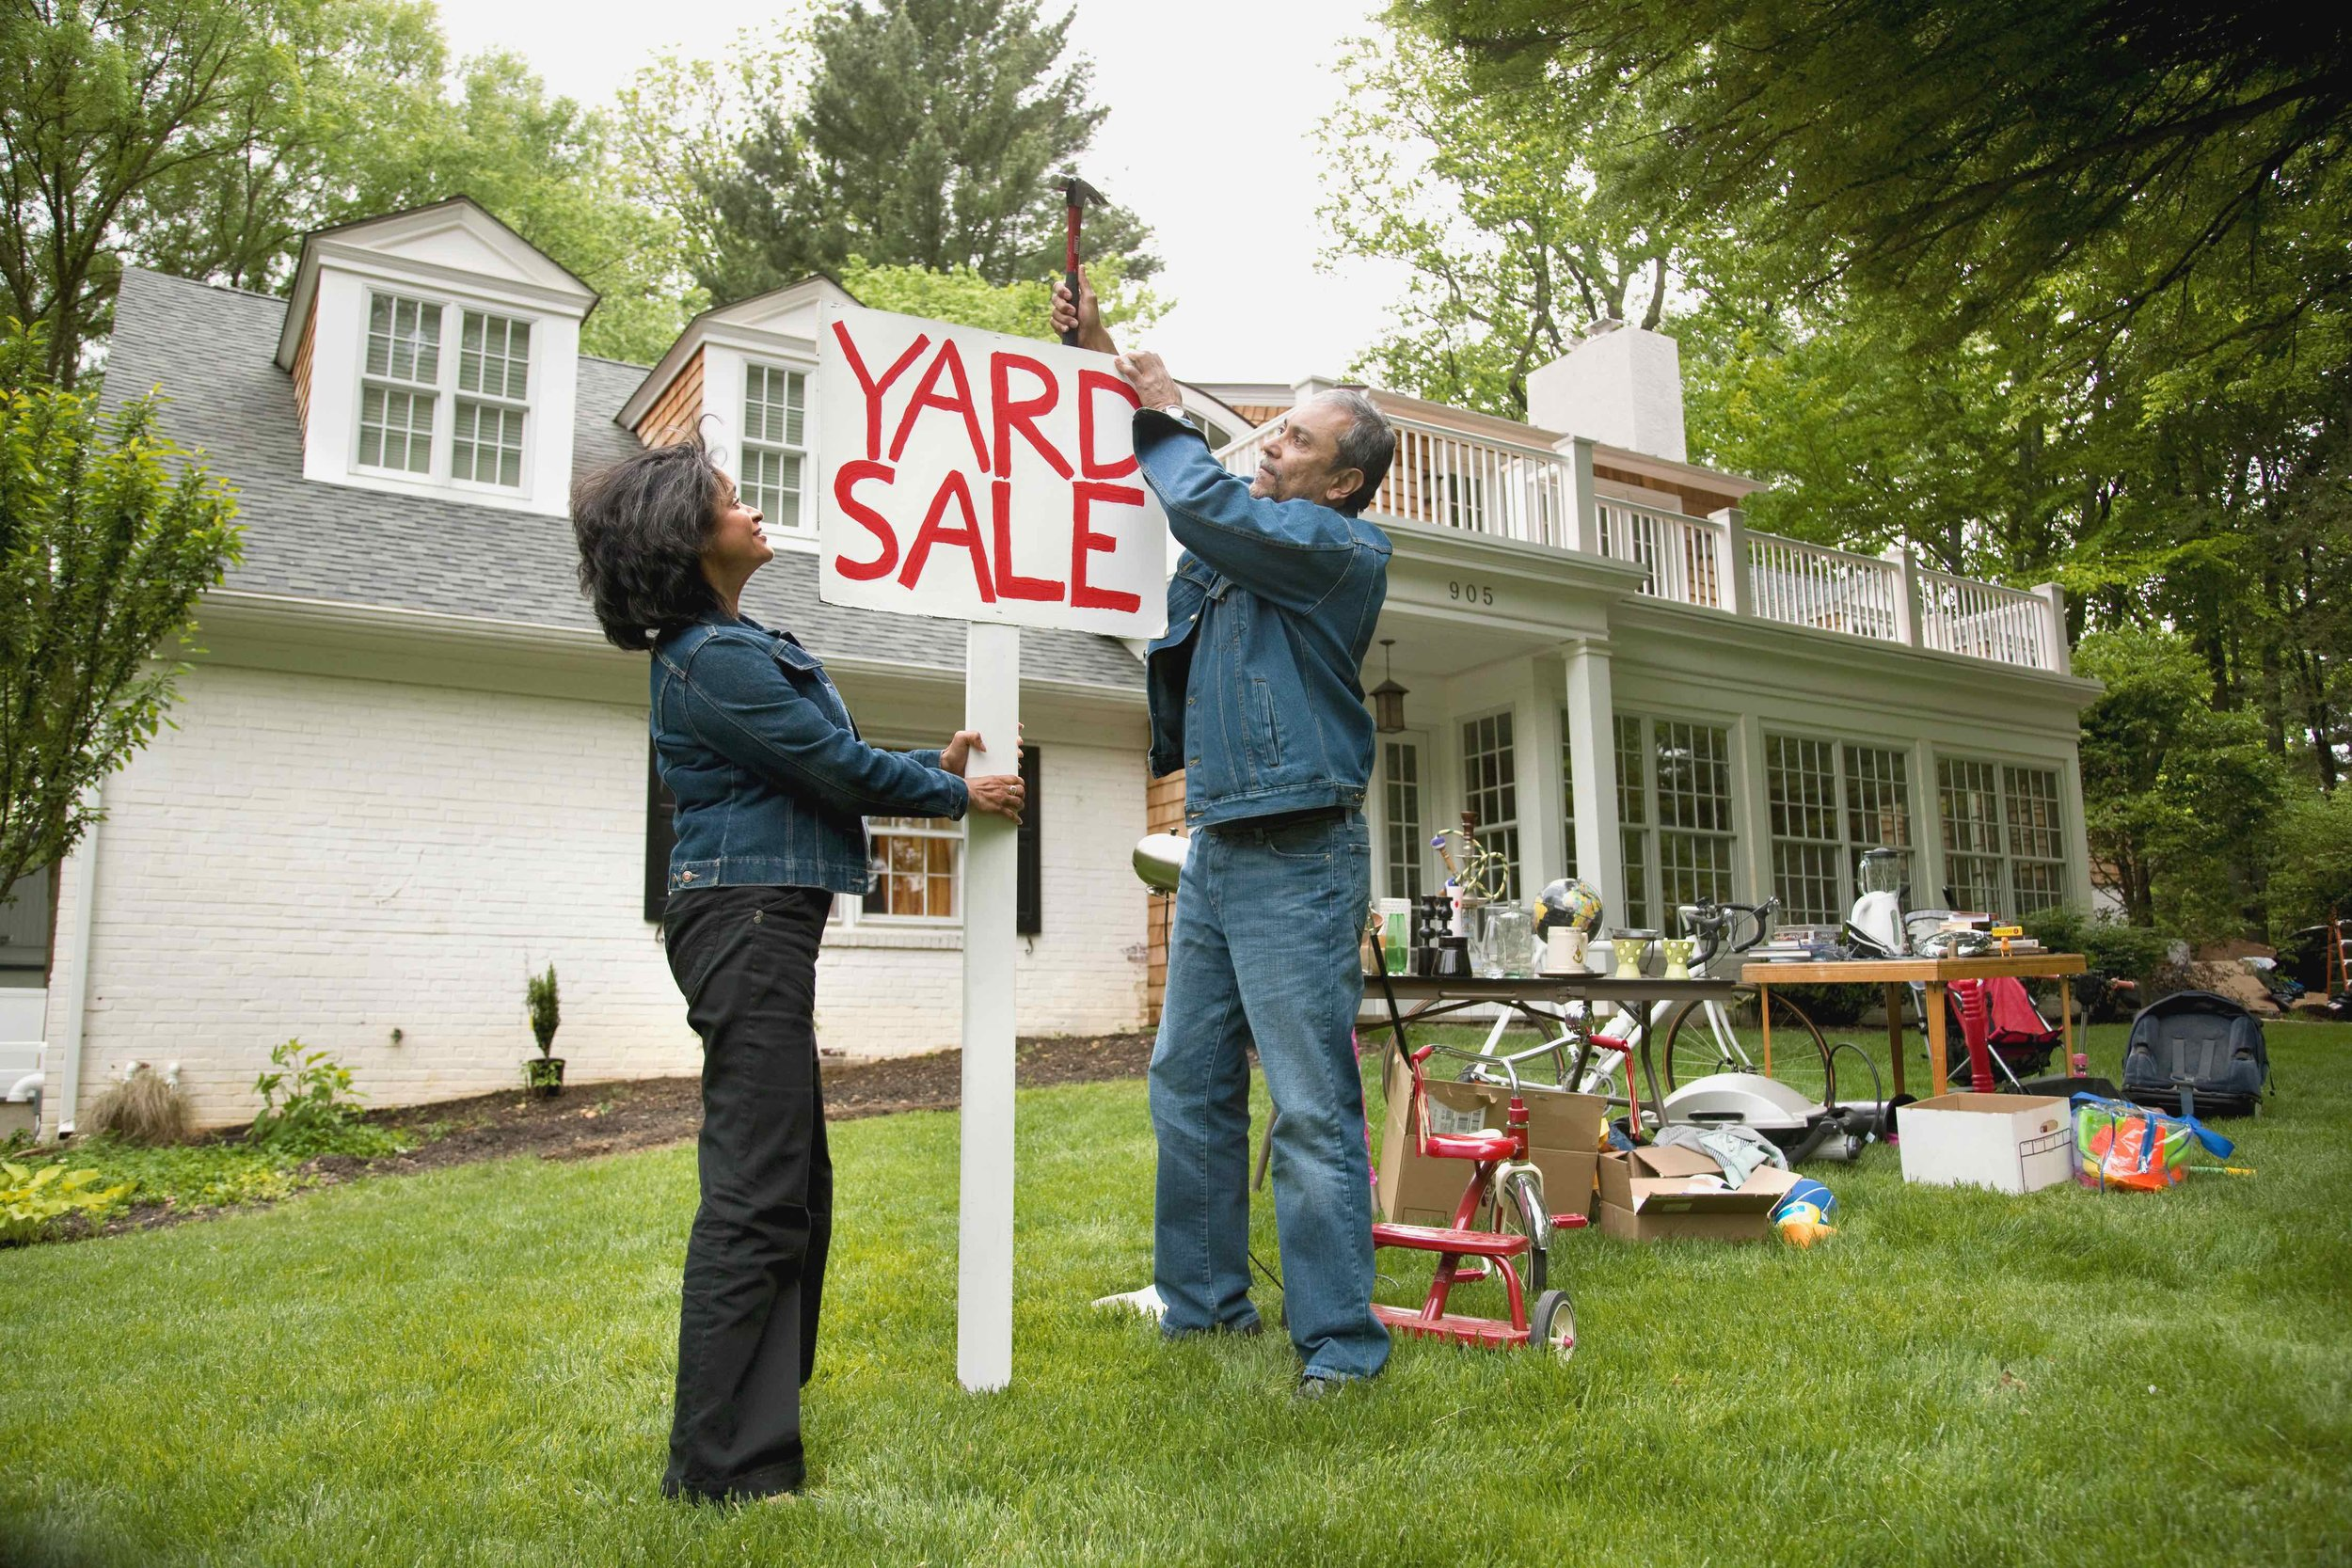 CoupleYardSaleSignHC1603_source.jpg